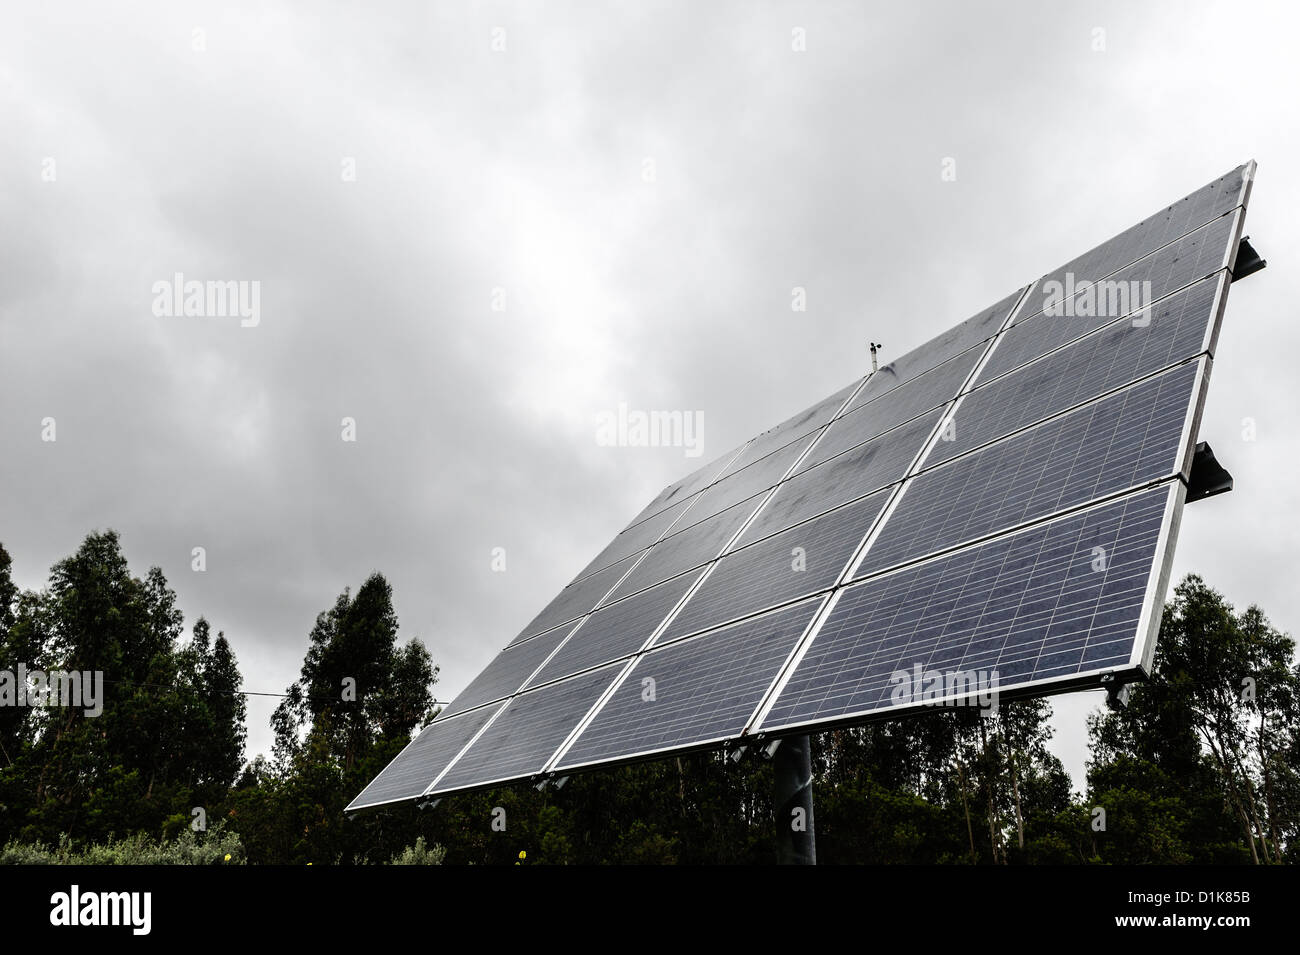 Solar panels on an overcast day - Stock Image